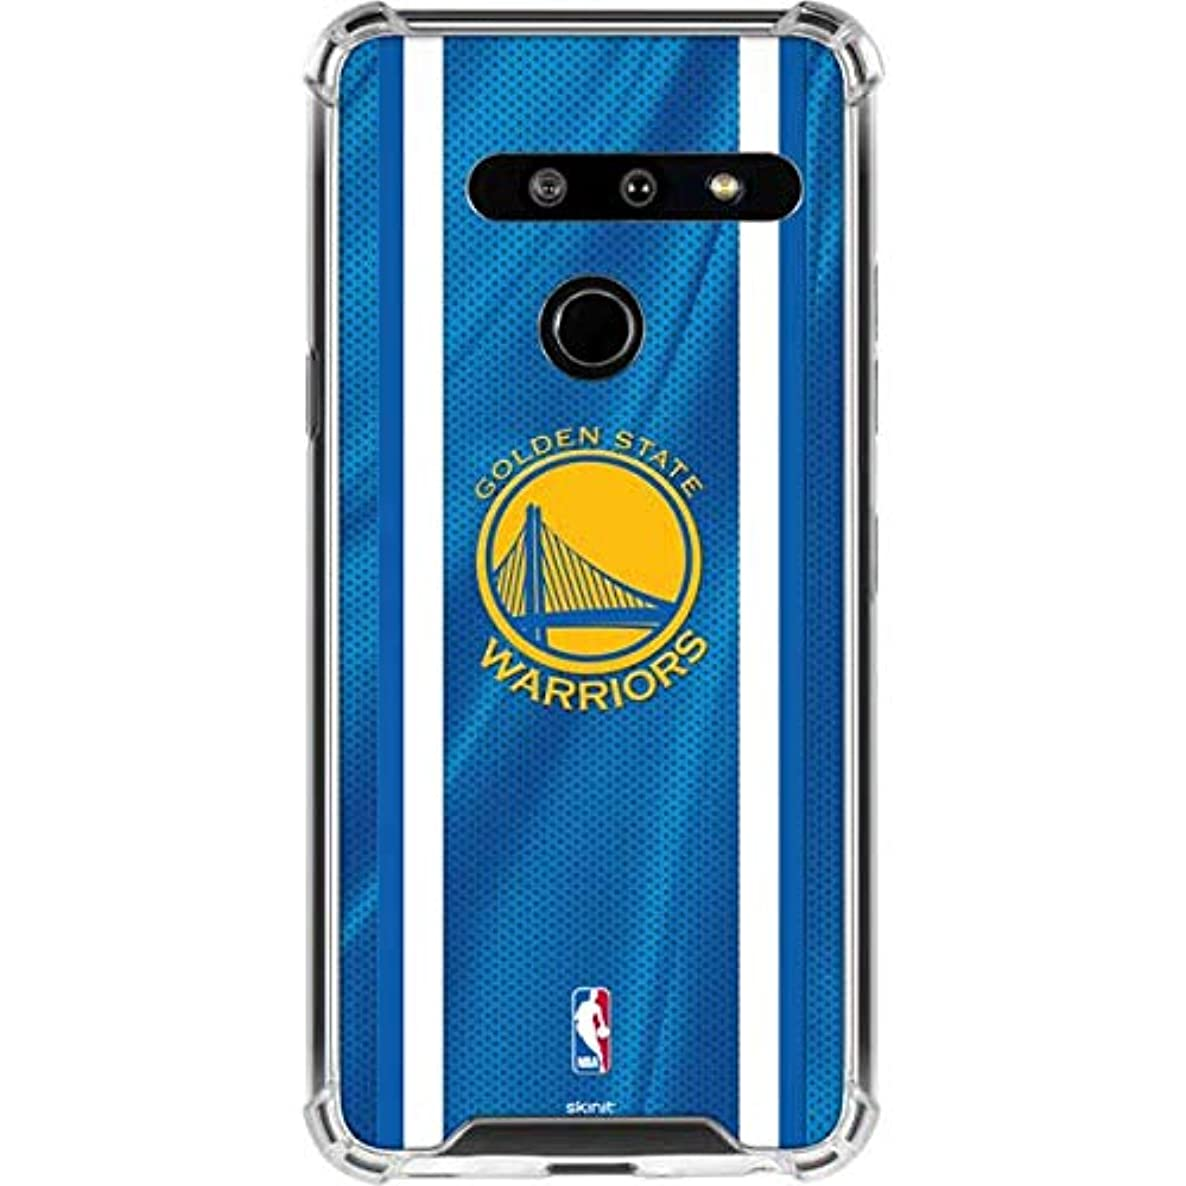 Skinit Golden State Warriors LG G8 ThinQ Clear Case - Officially Licensed NBA Phone Case - Transparent LG G8 ThinQ Cover